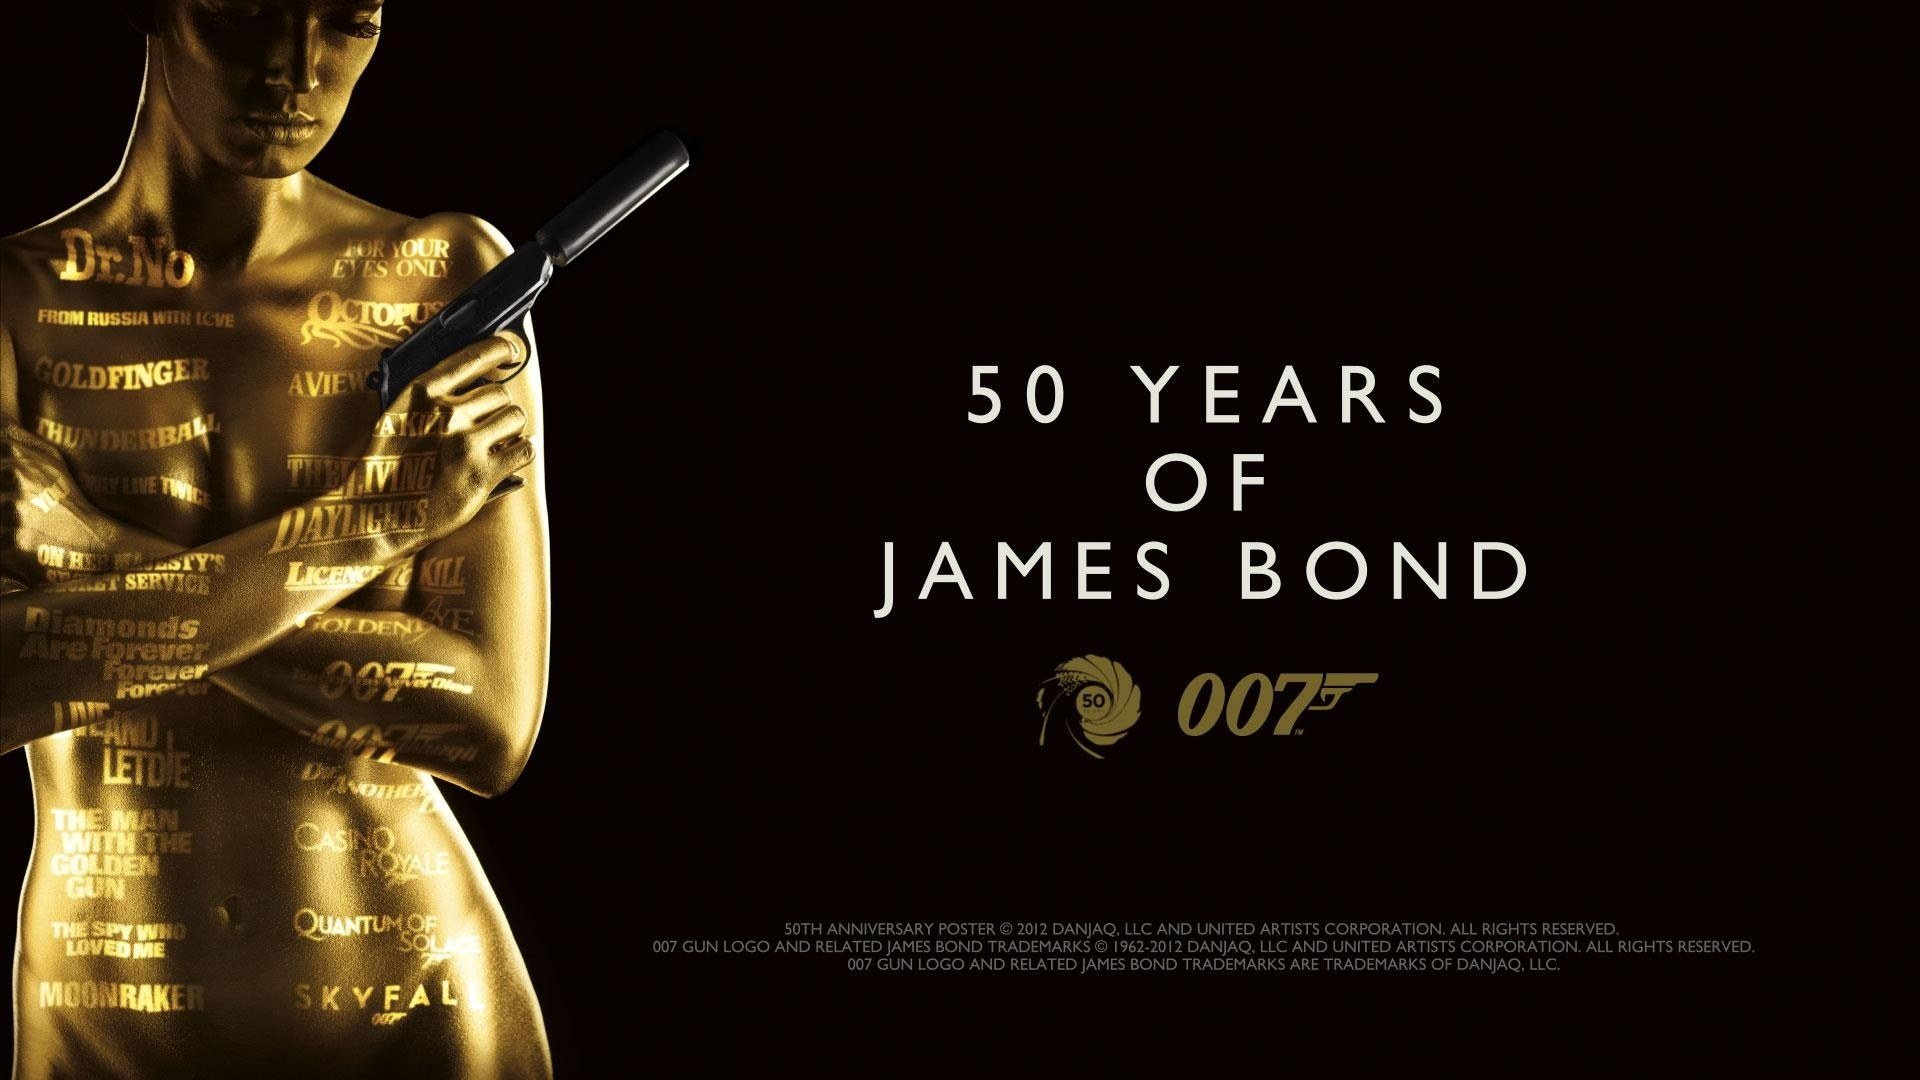 50 years of james bond full hd wallpaper and background - James bond images hd ...